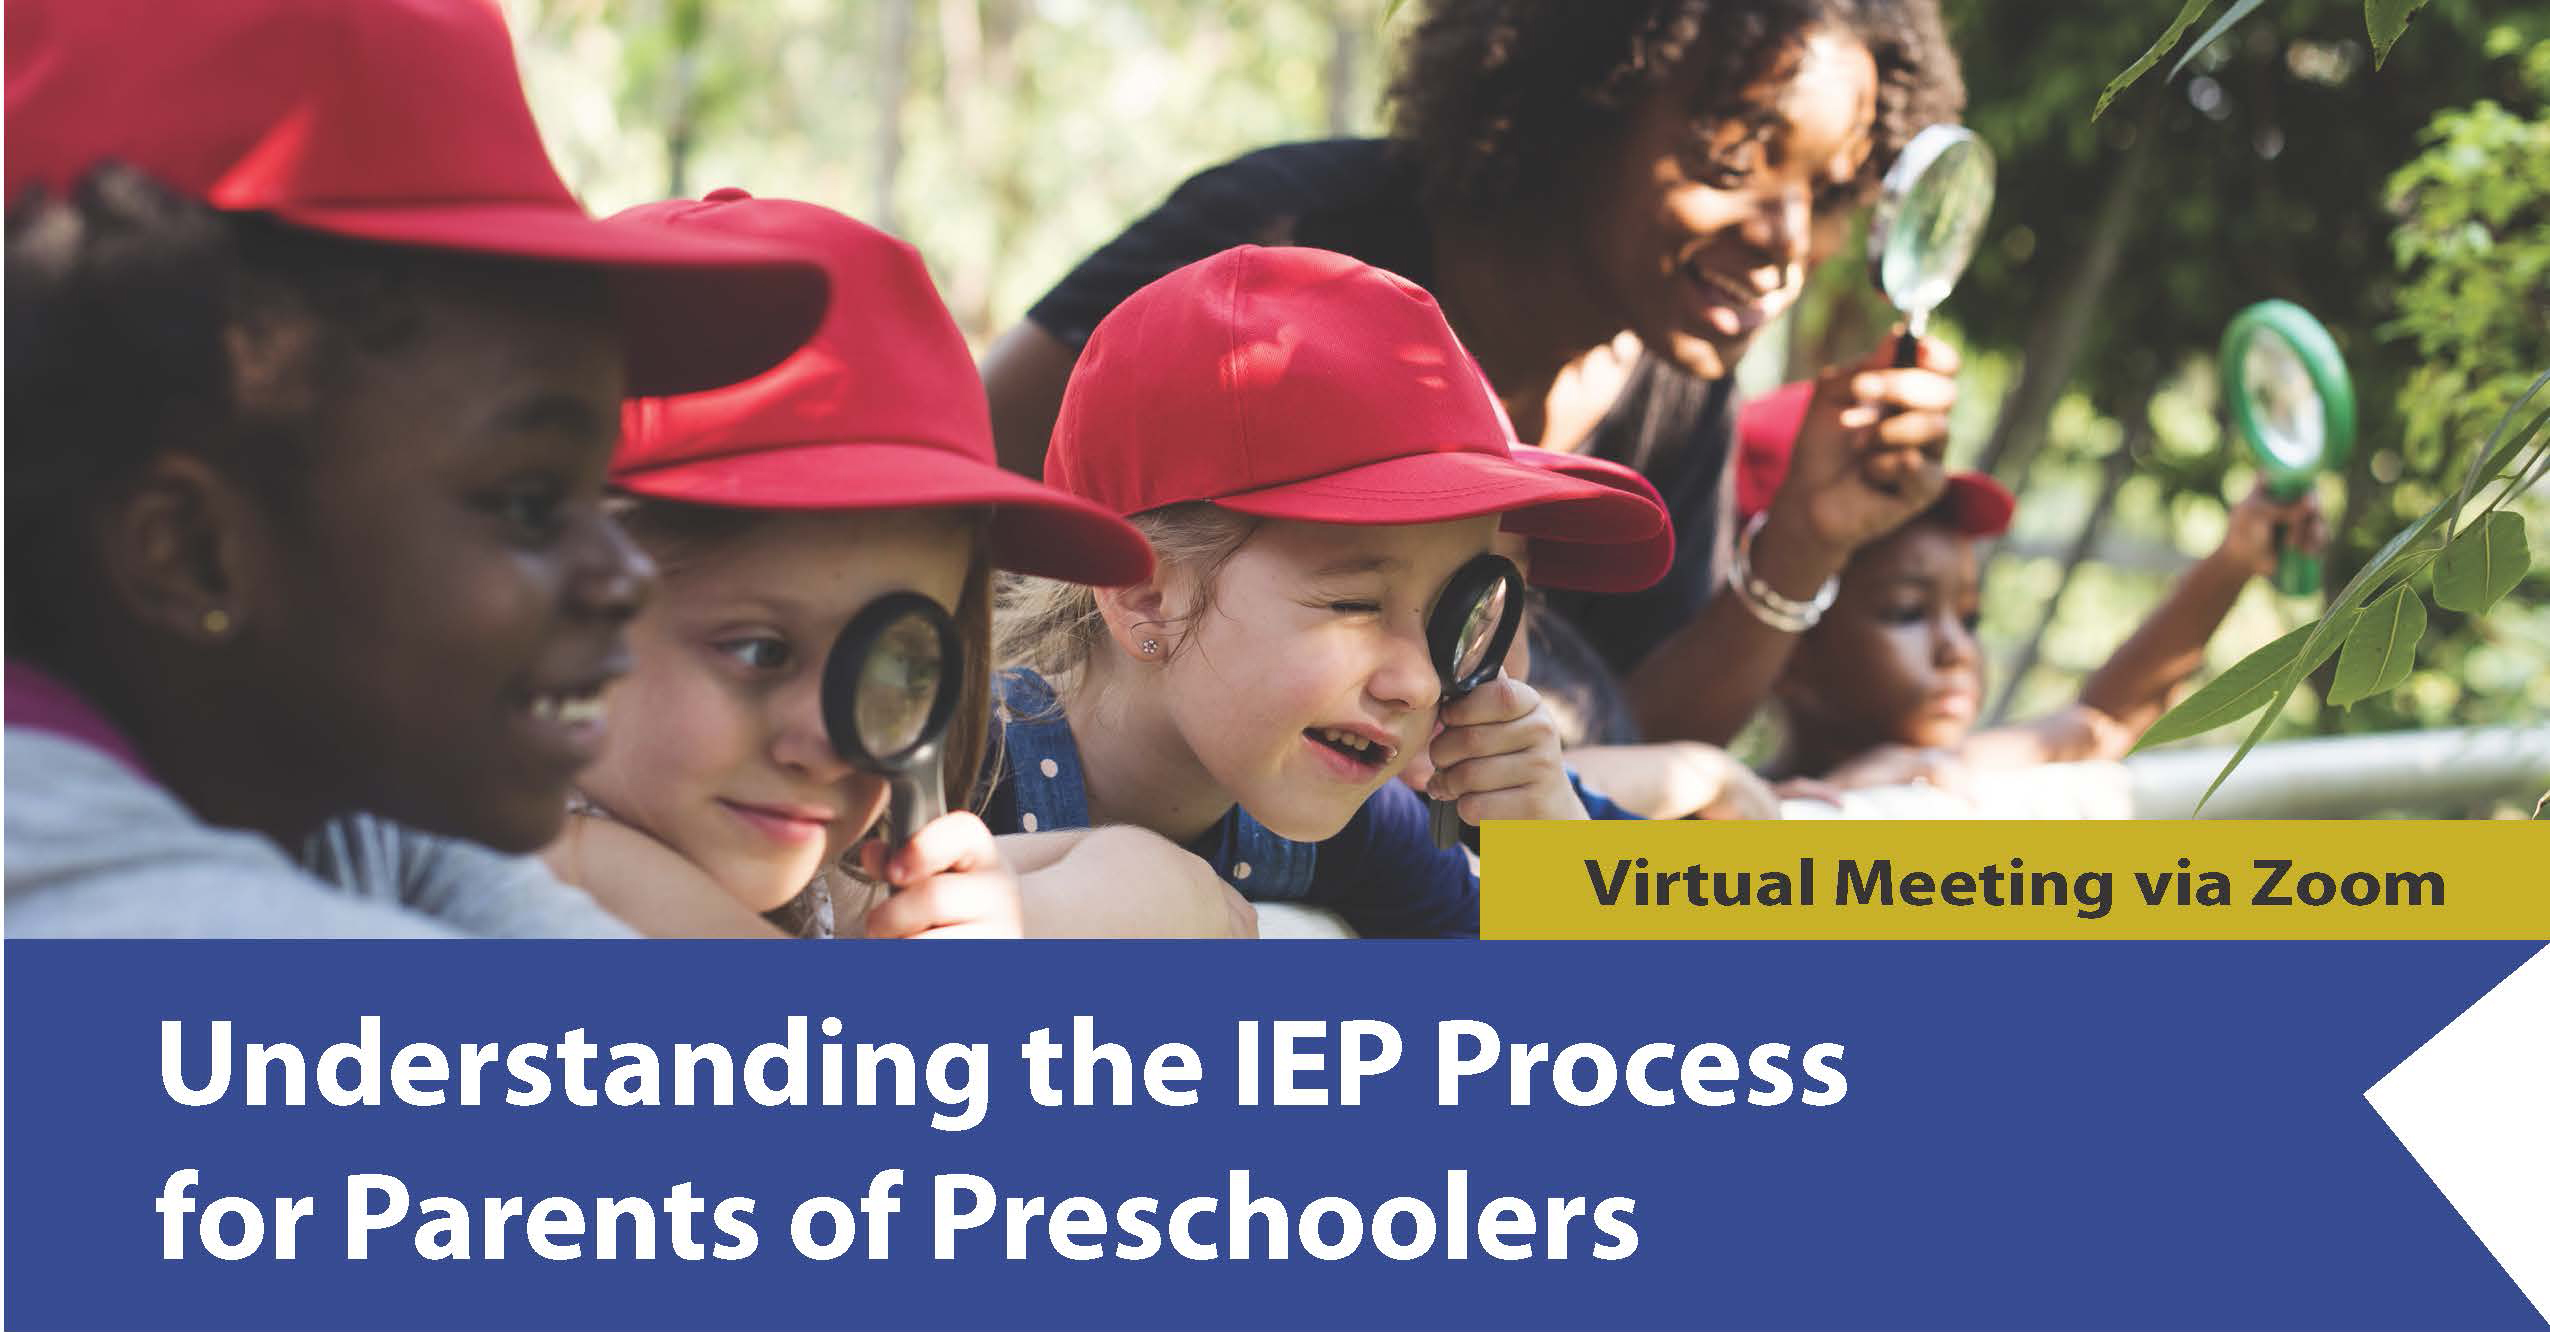 picture of kids with red caps and a teacher looking through magnifying glasses at a park with the words Understanding the IEP Process for Parents of Preschoolers